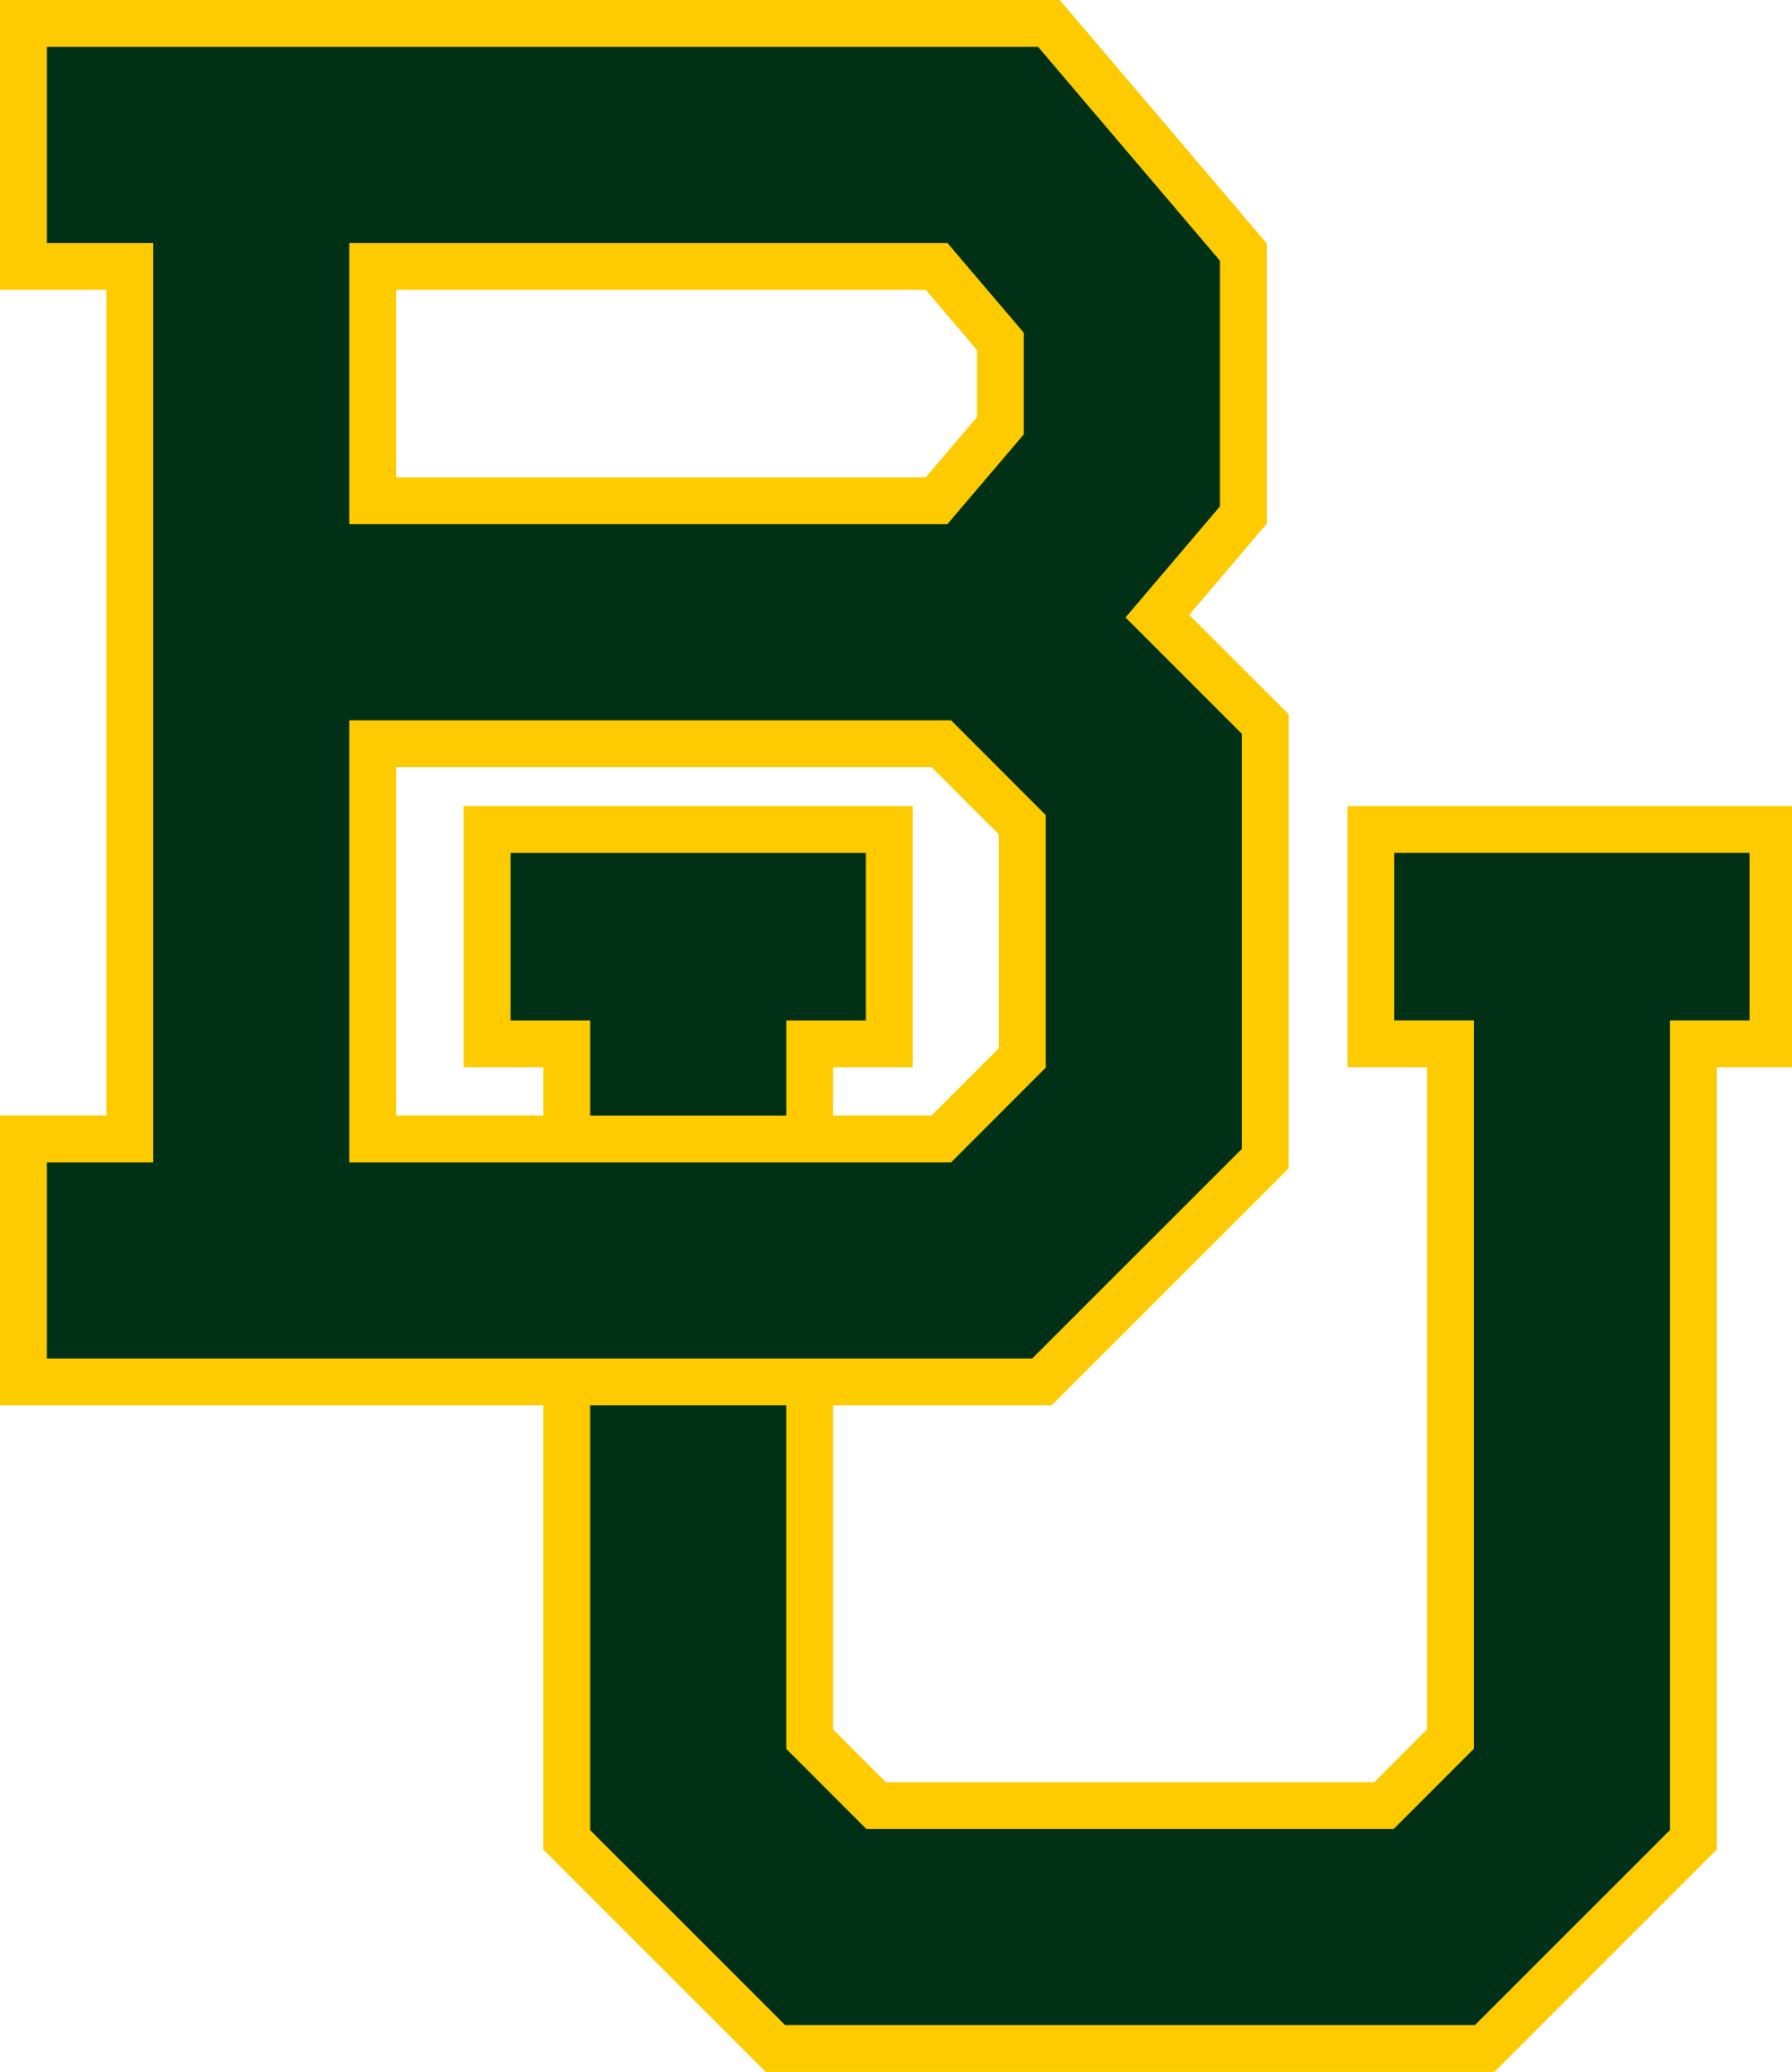 Presentation name on emaze baylor school of medicine will cost 122392 for my total education it will cost 289784 give or take a couple bucks buycottarizona Images